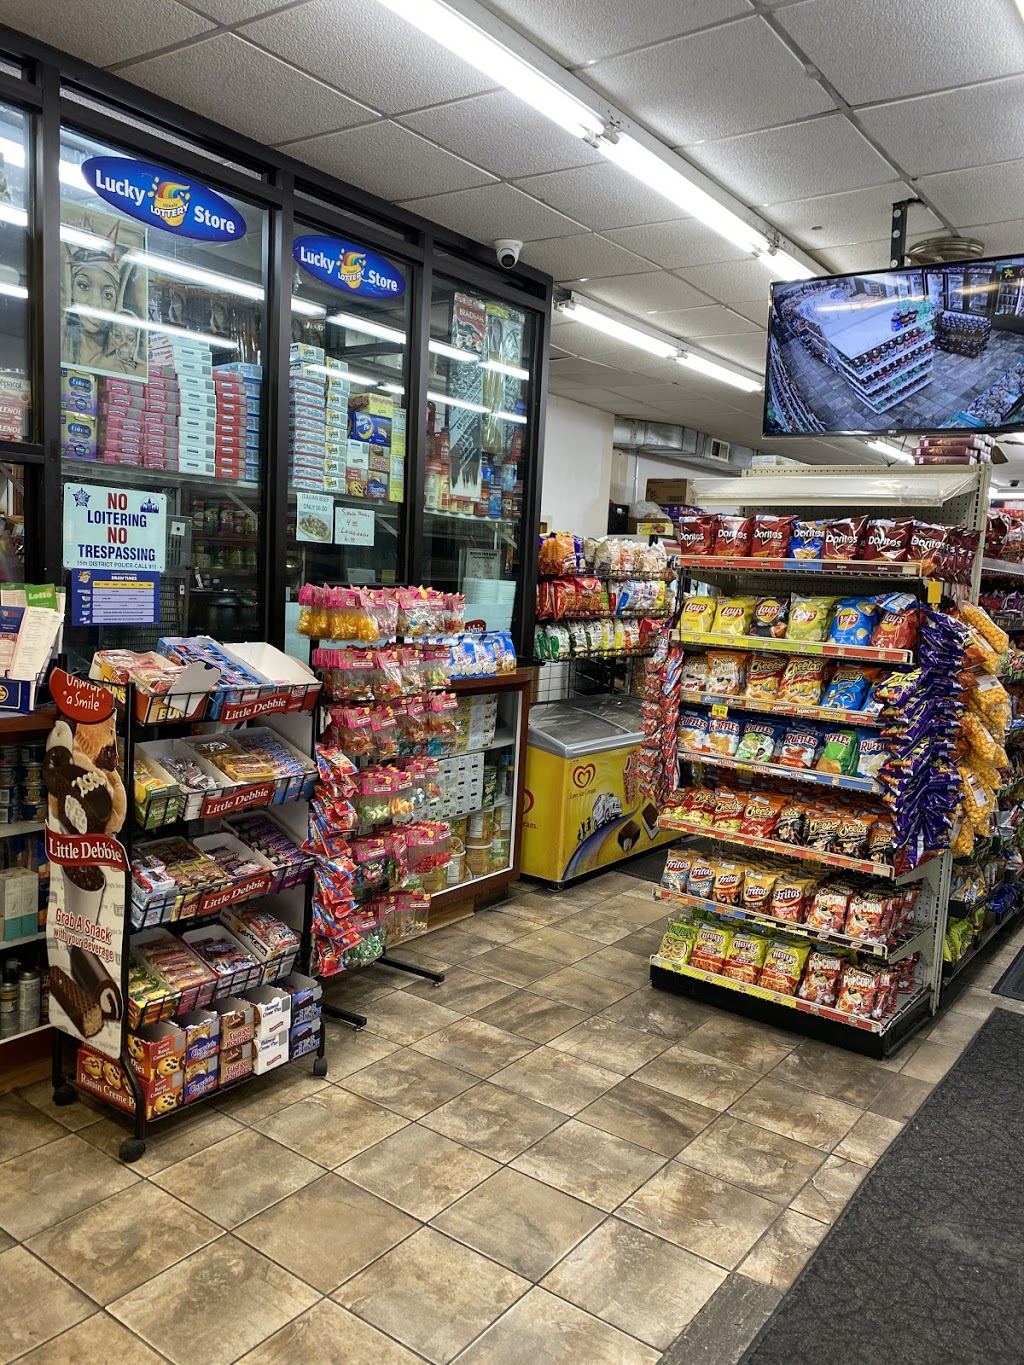 Franks Food Mart - convenience store  | Photo 1 of 1 | Address: 5050 W Madison St, Chicago, IL 60644, USA | Phone: (773) 261-5800